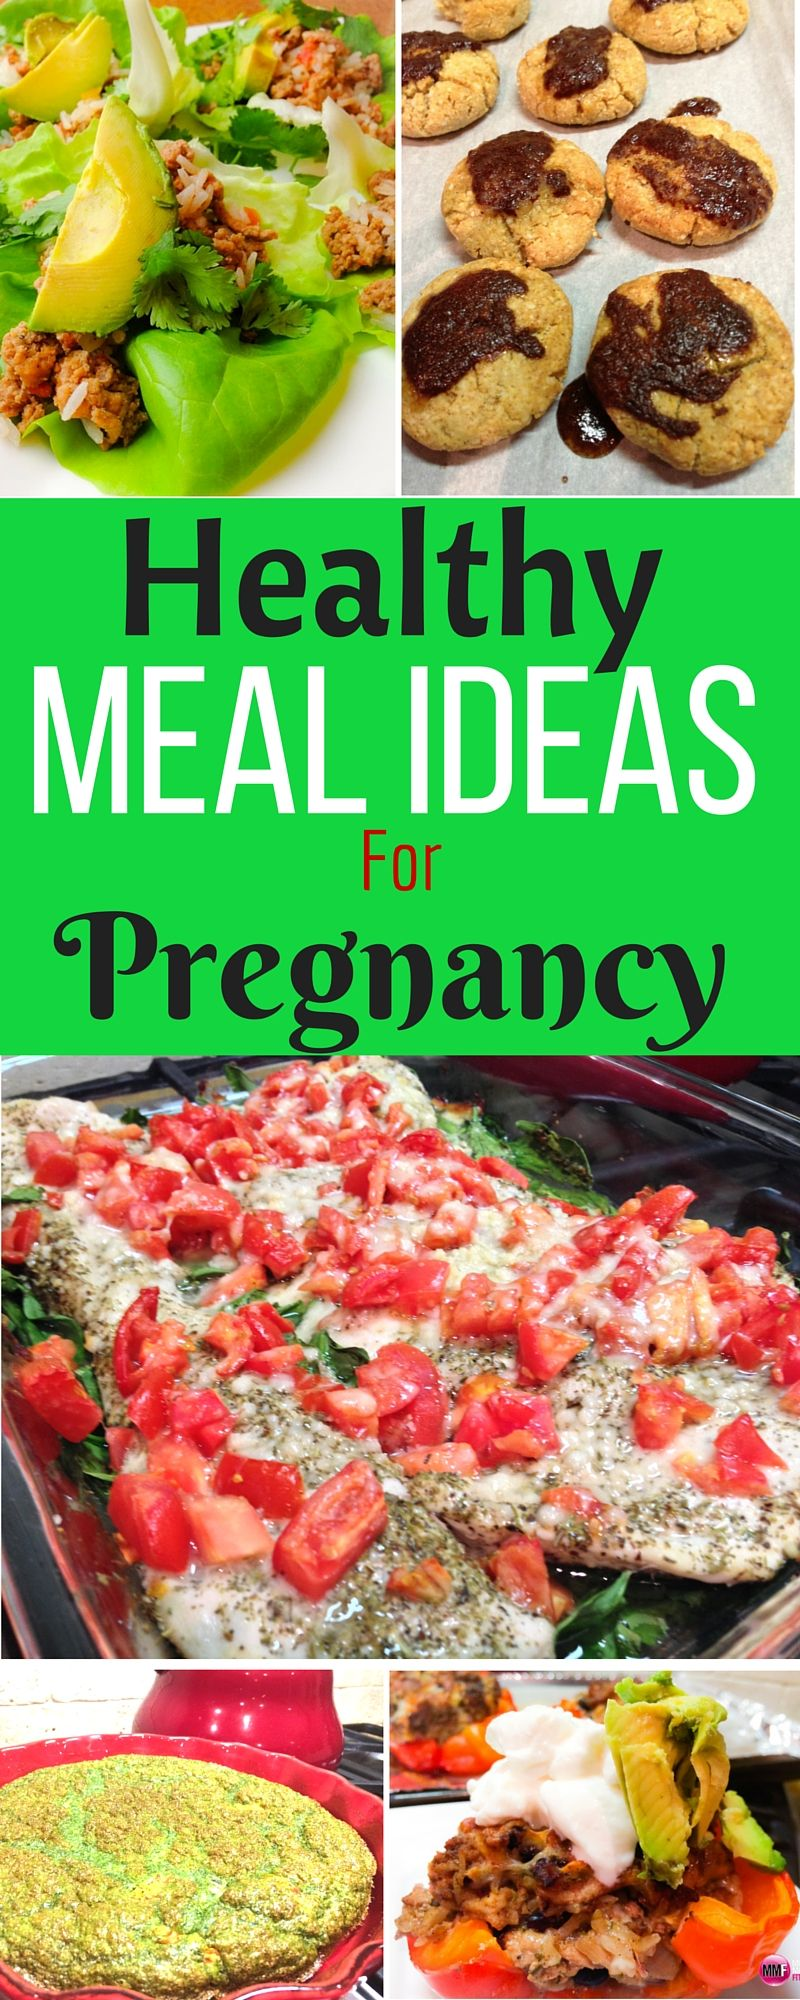 Pregnancy diet plan healthy pregnancy recipes pregnancy diets and here are the most delicious and healthy pregnancy recipes to help pregnant women enjoy comfort food but in a healthy way while controlling weight gain forumfinder Image collections